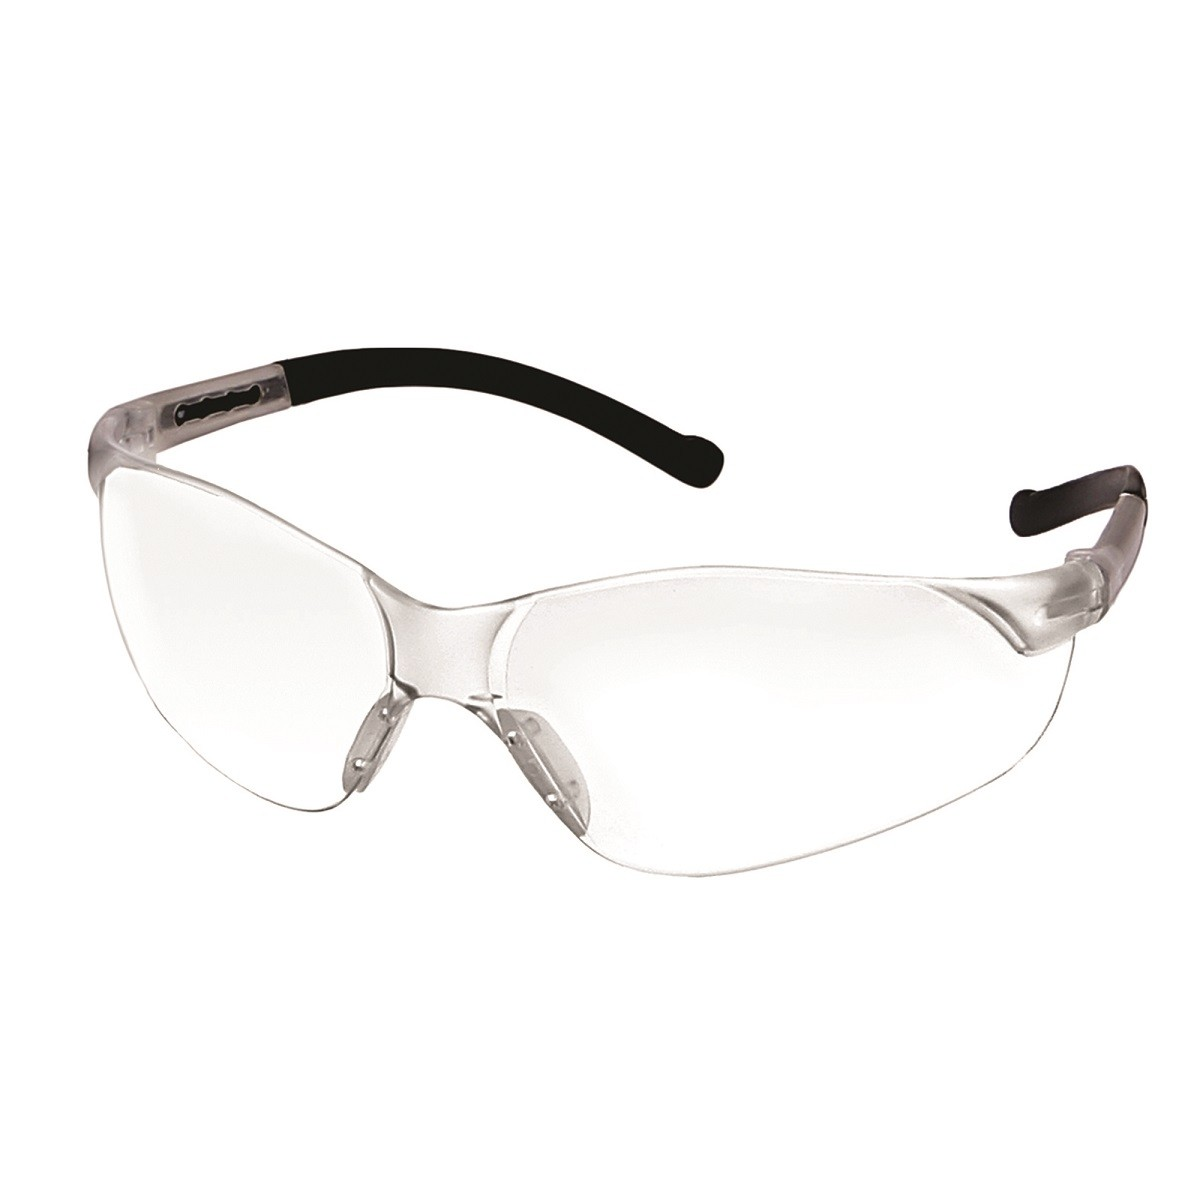 Erb Inhibitor Safety Glasses